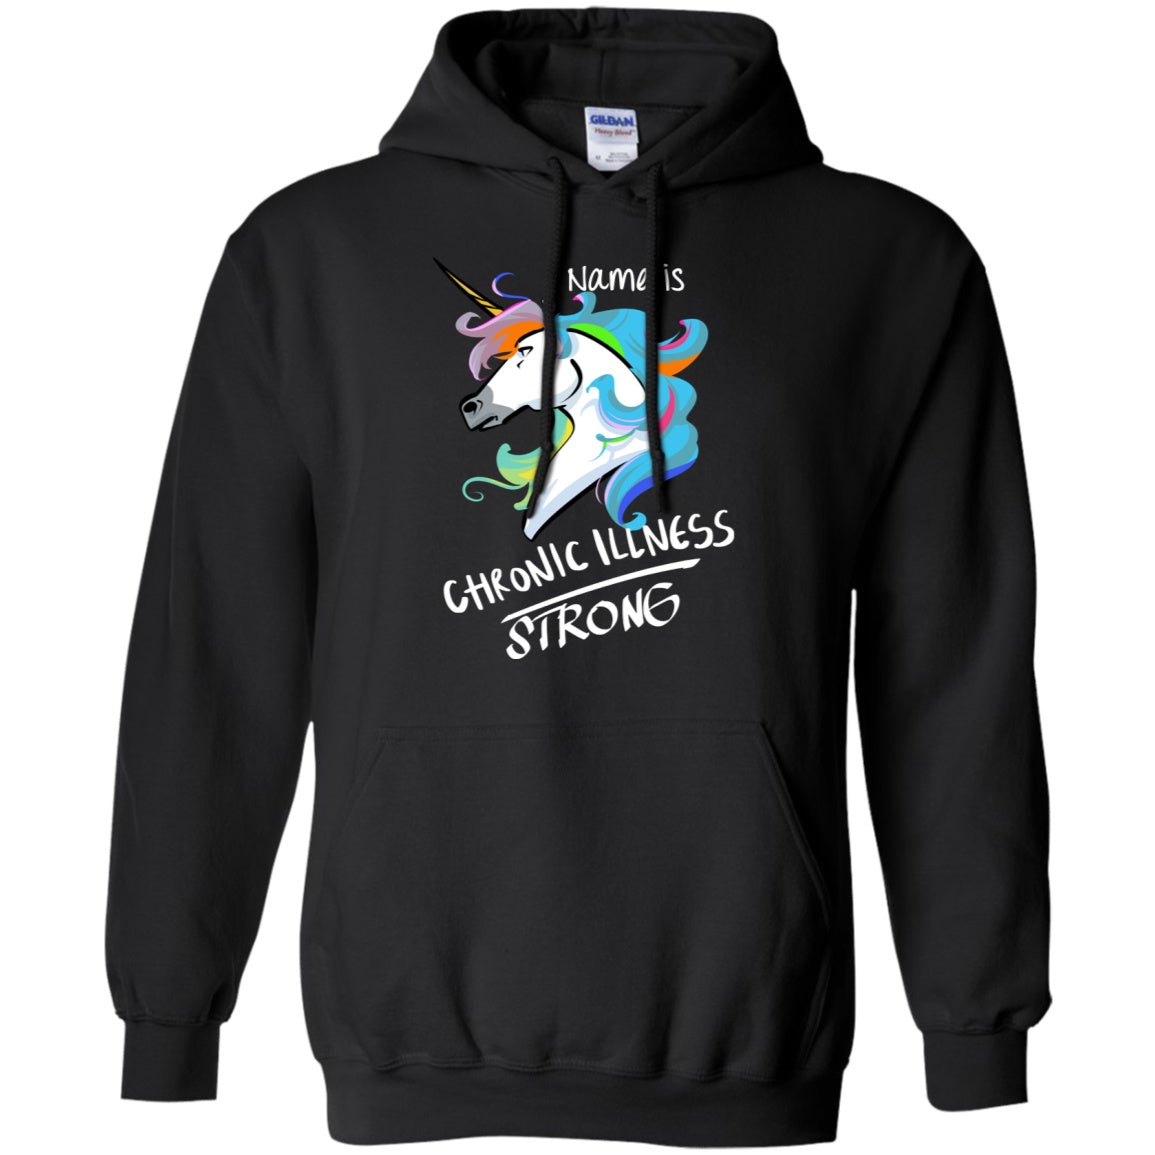 Customisable Chronic Illness Strong Unicorn Pullover Hoodie 8 oz. - The Unchargeables